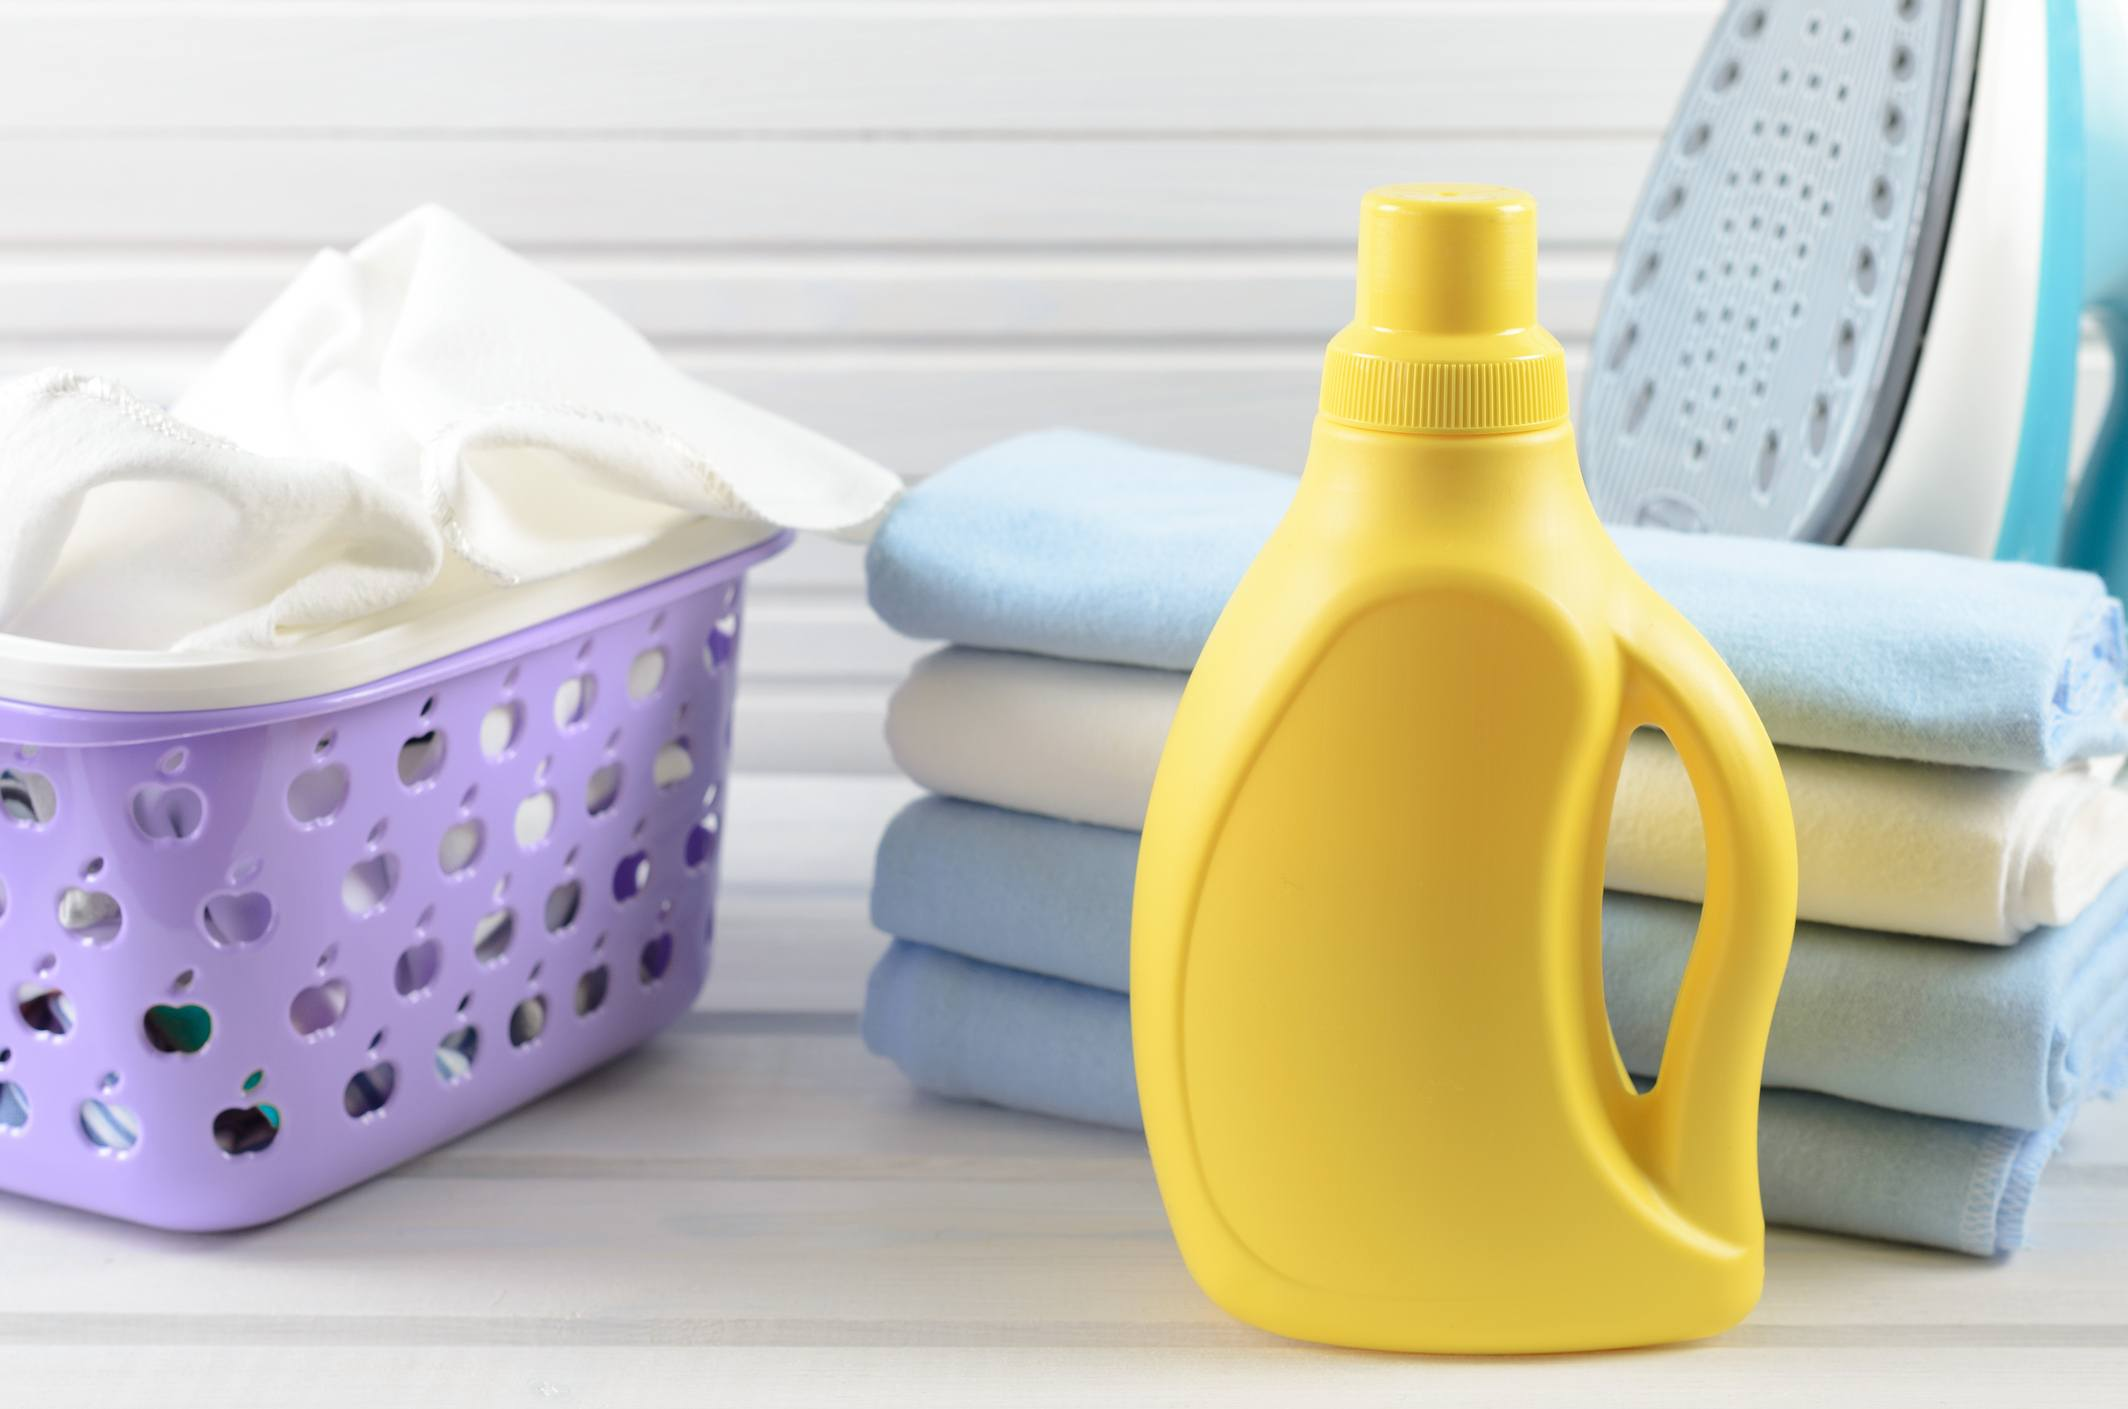 Laundry folded with detergent